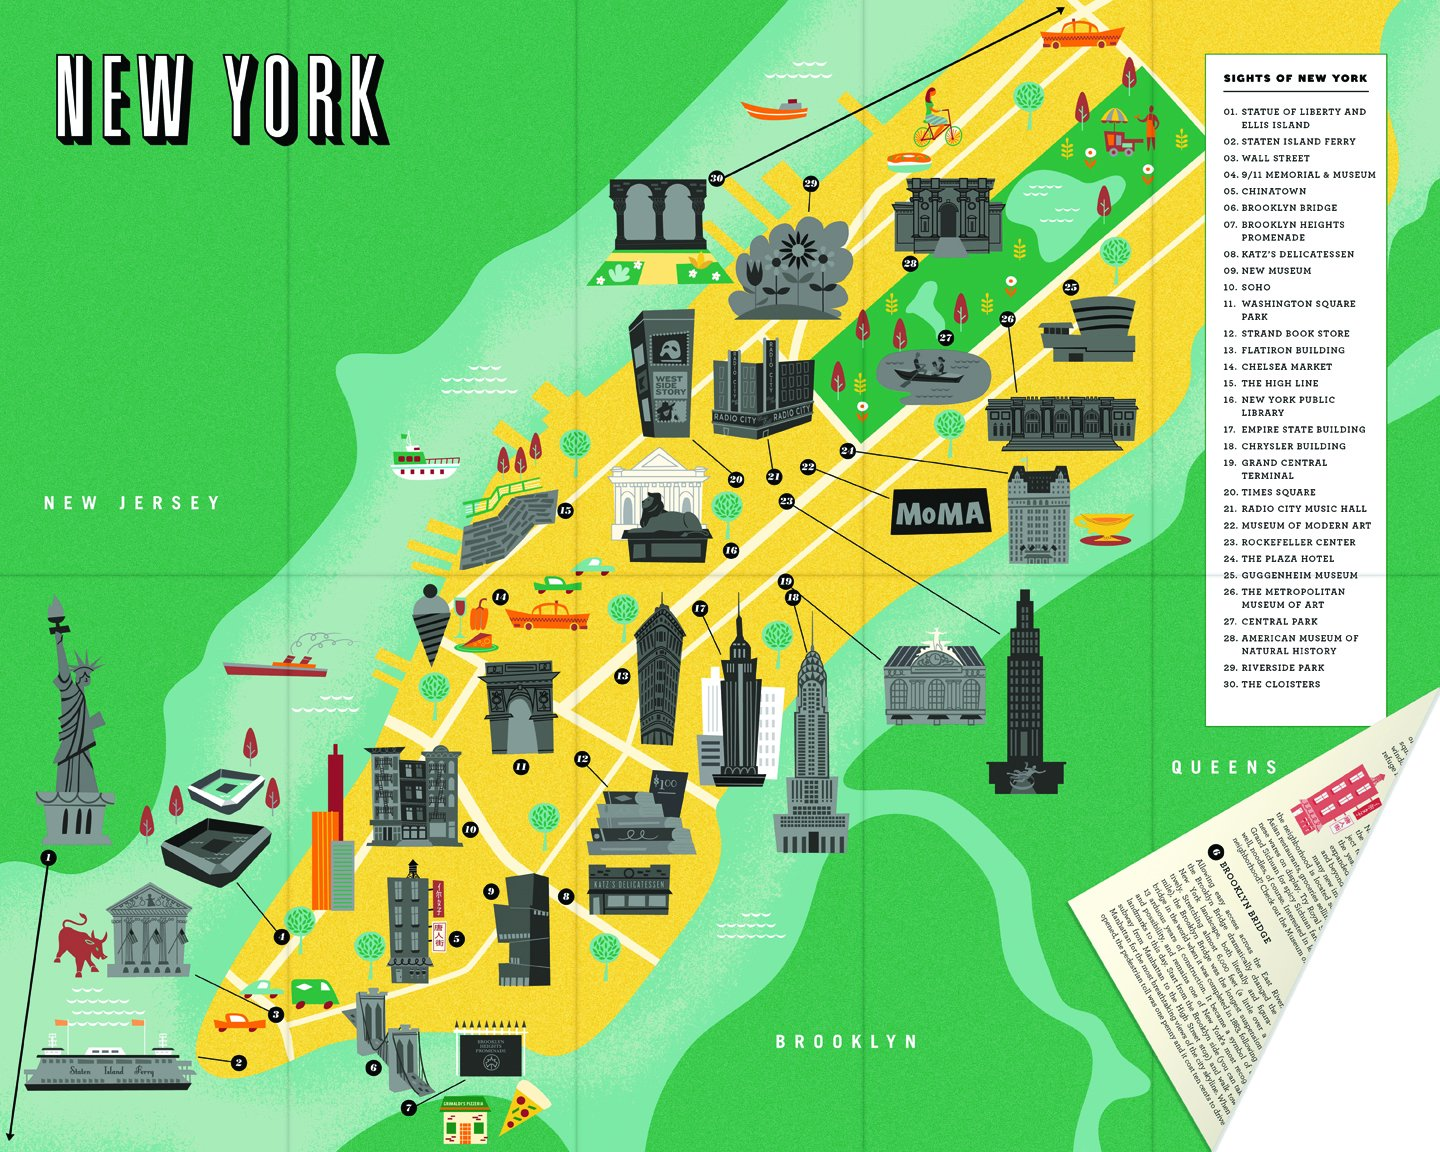 city scratch off map new york a sight seeing scavenger hunt christina henry de tessan 9781452139869 amazoncom books